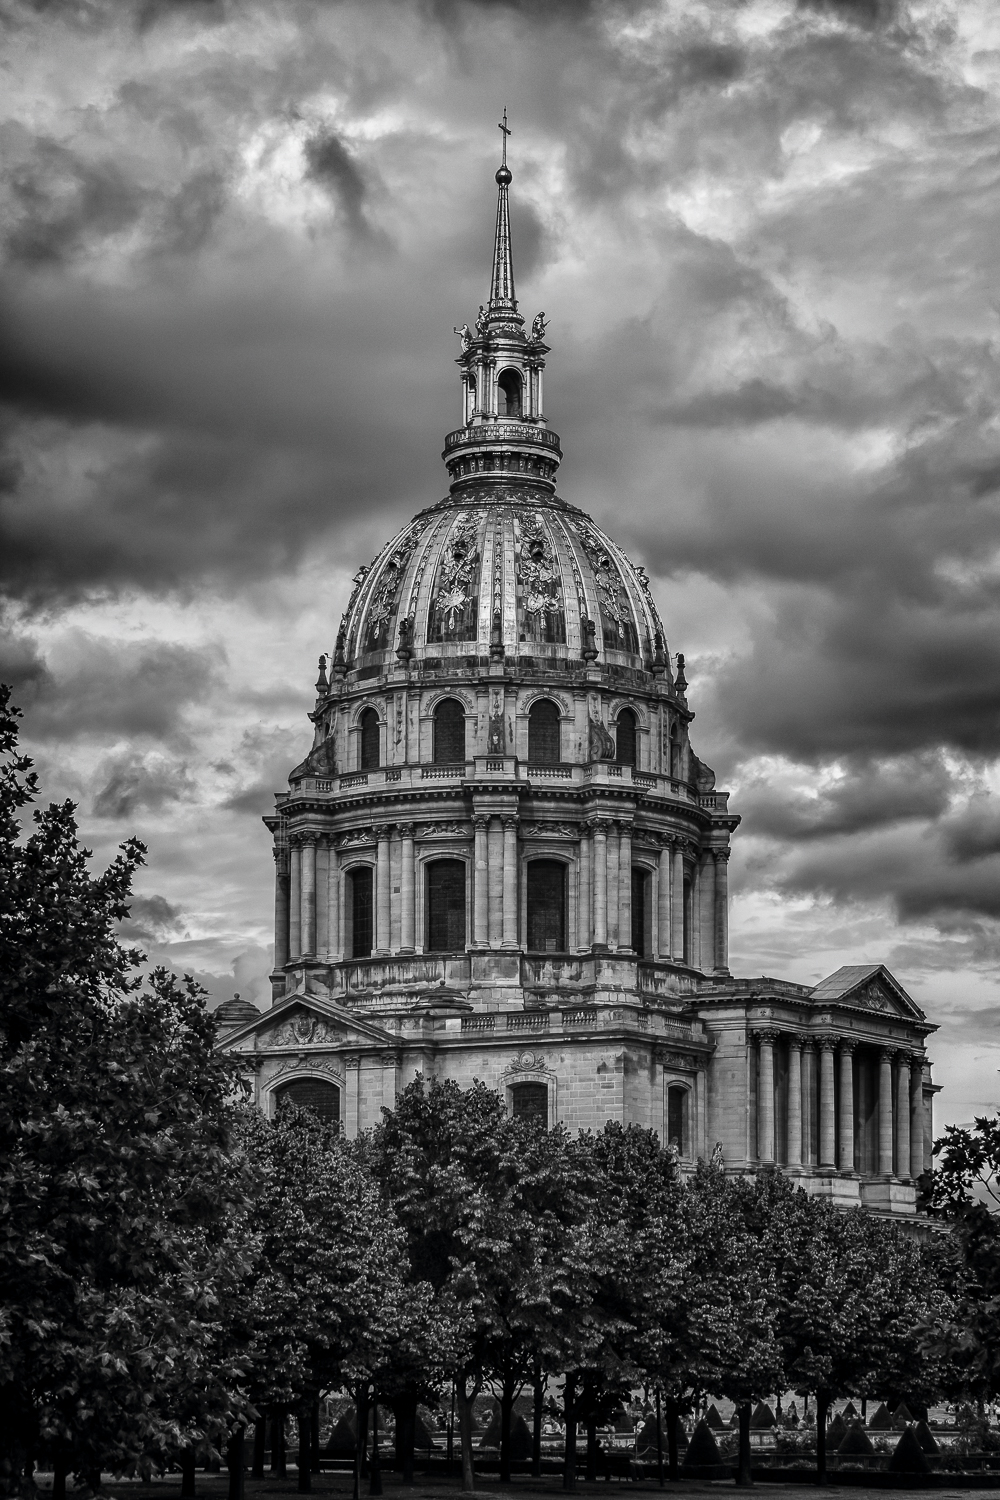 An exterior black and white rendering of  Les Invalides  pictured against a  dramatic sky  in  Paris, France .